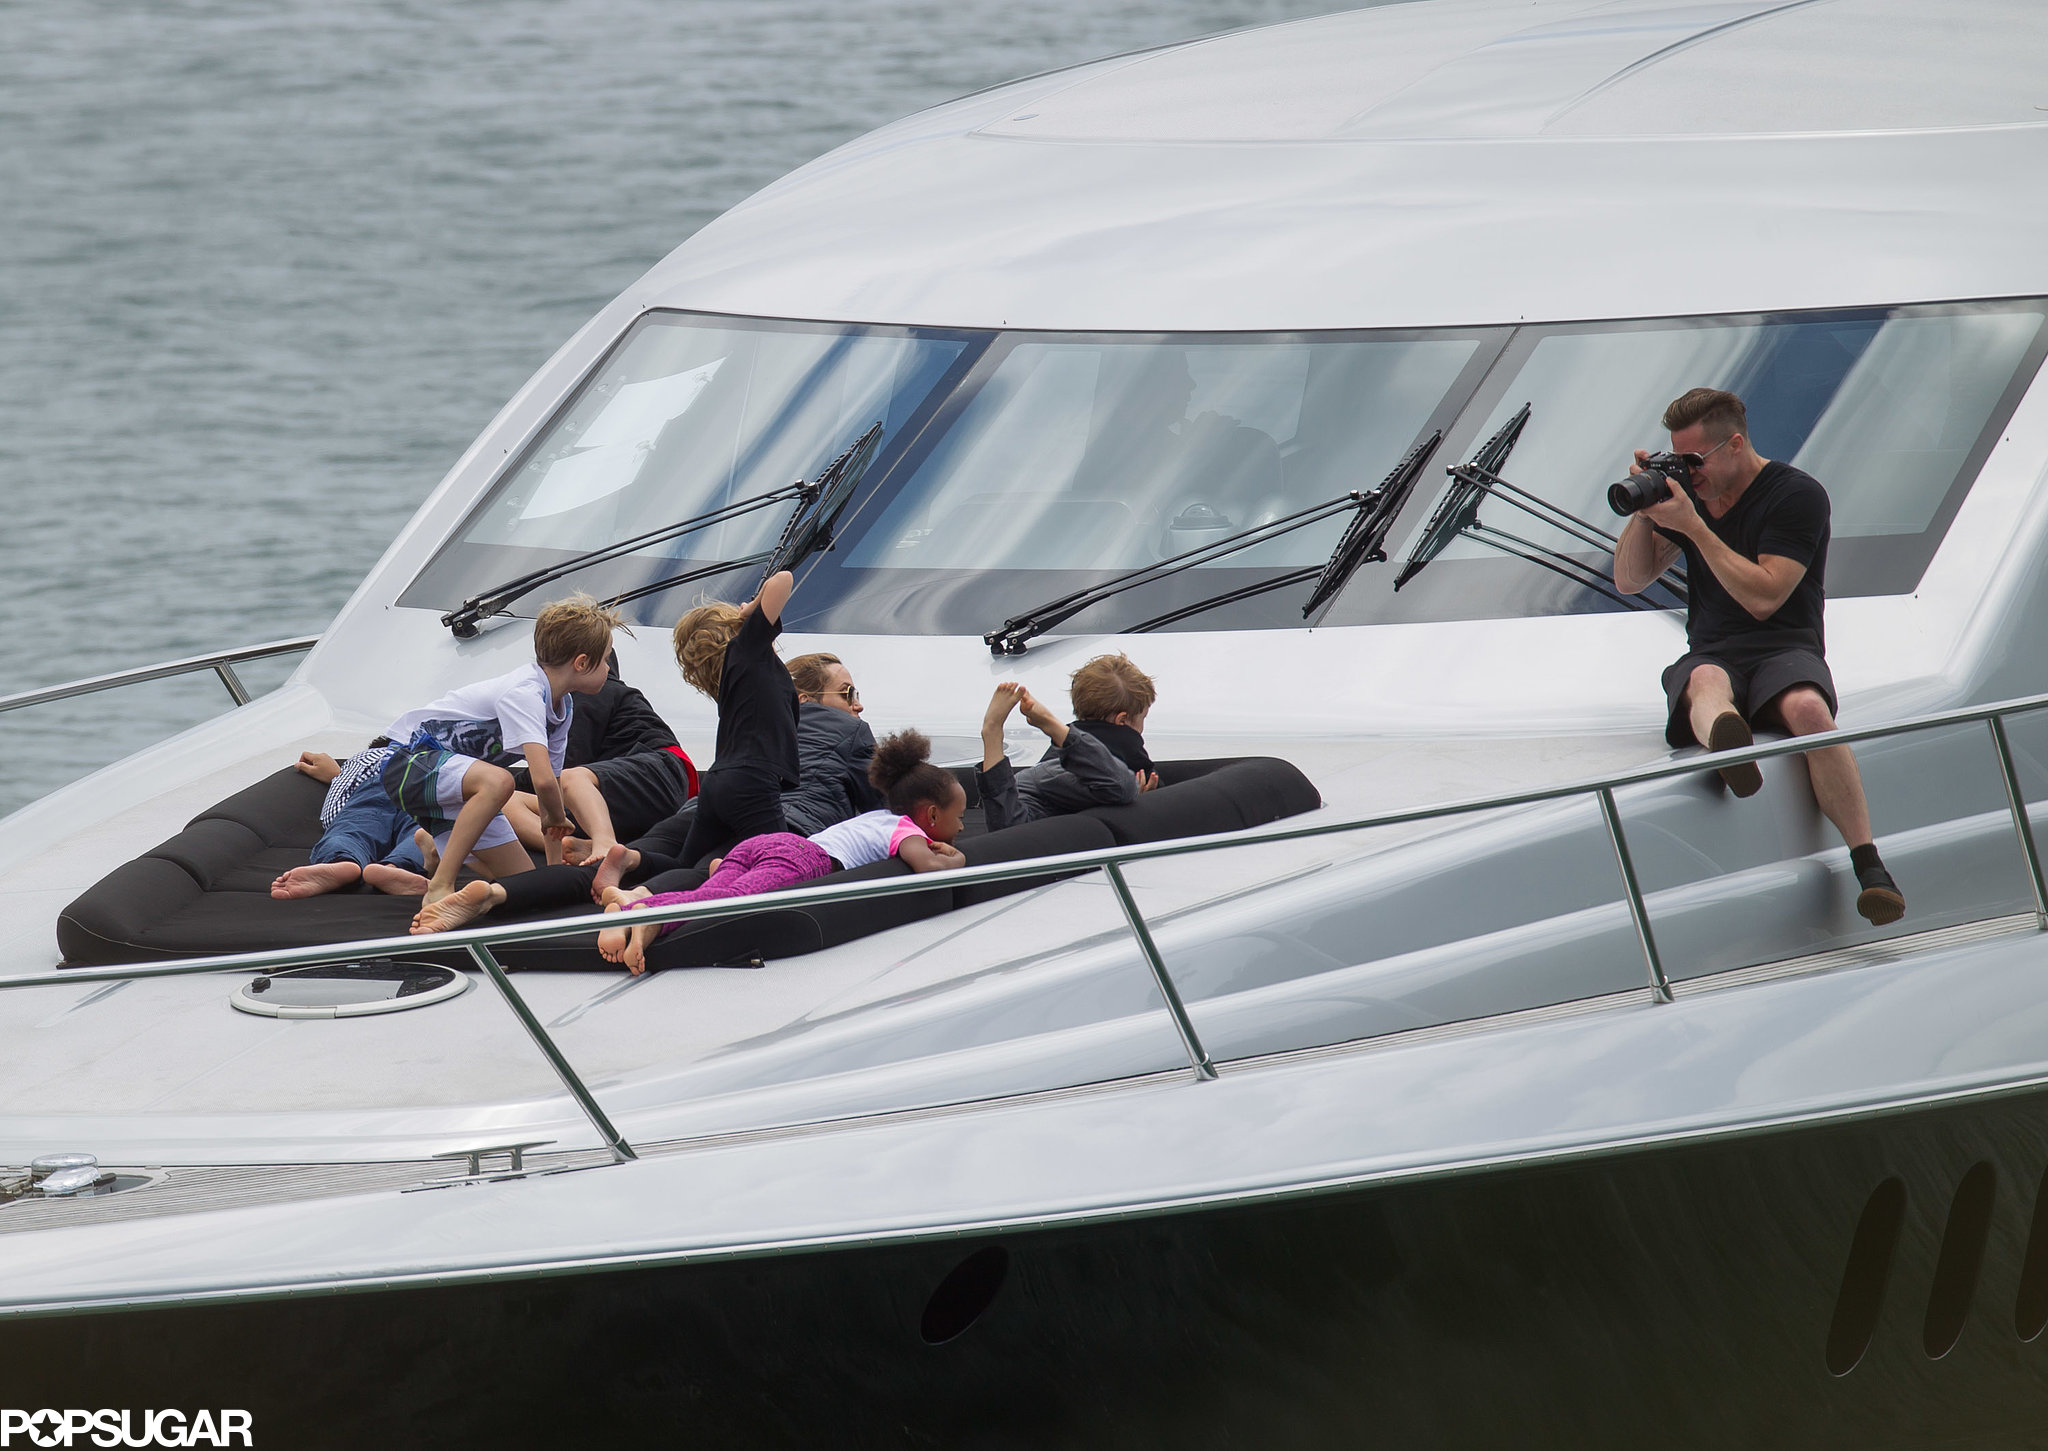 Brad Pitt and Angelina Jolie went yachting with their children for a day on the open water in Australia.